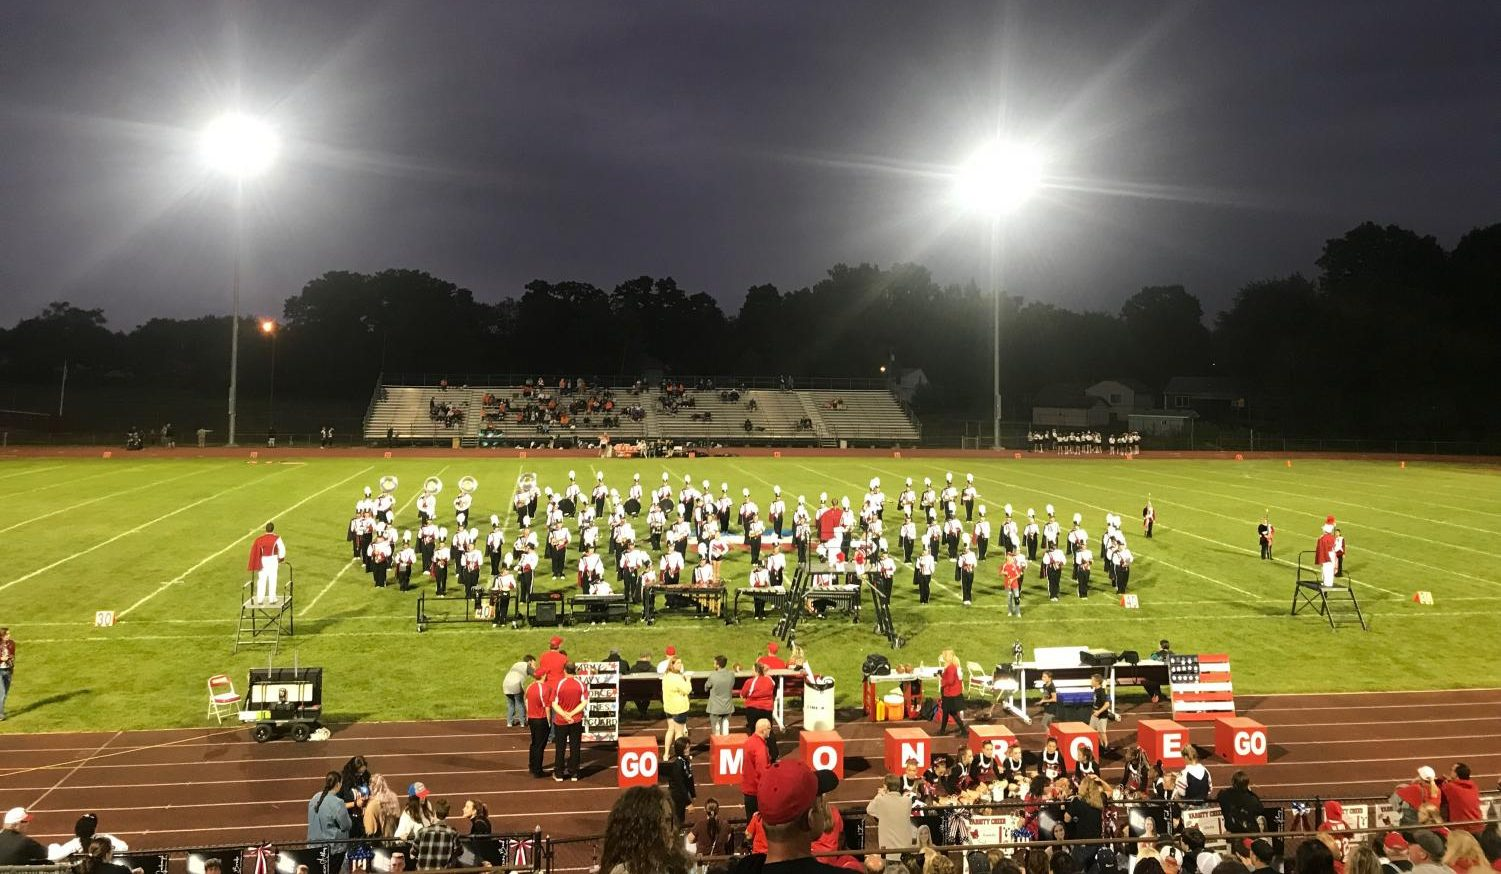 The MHS band performed at halftime during the Varsity football game against Fenton High School. The band was invited to perform at the Detroit Thanksgiving Parade.